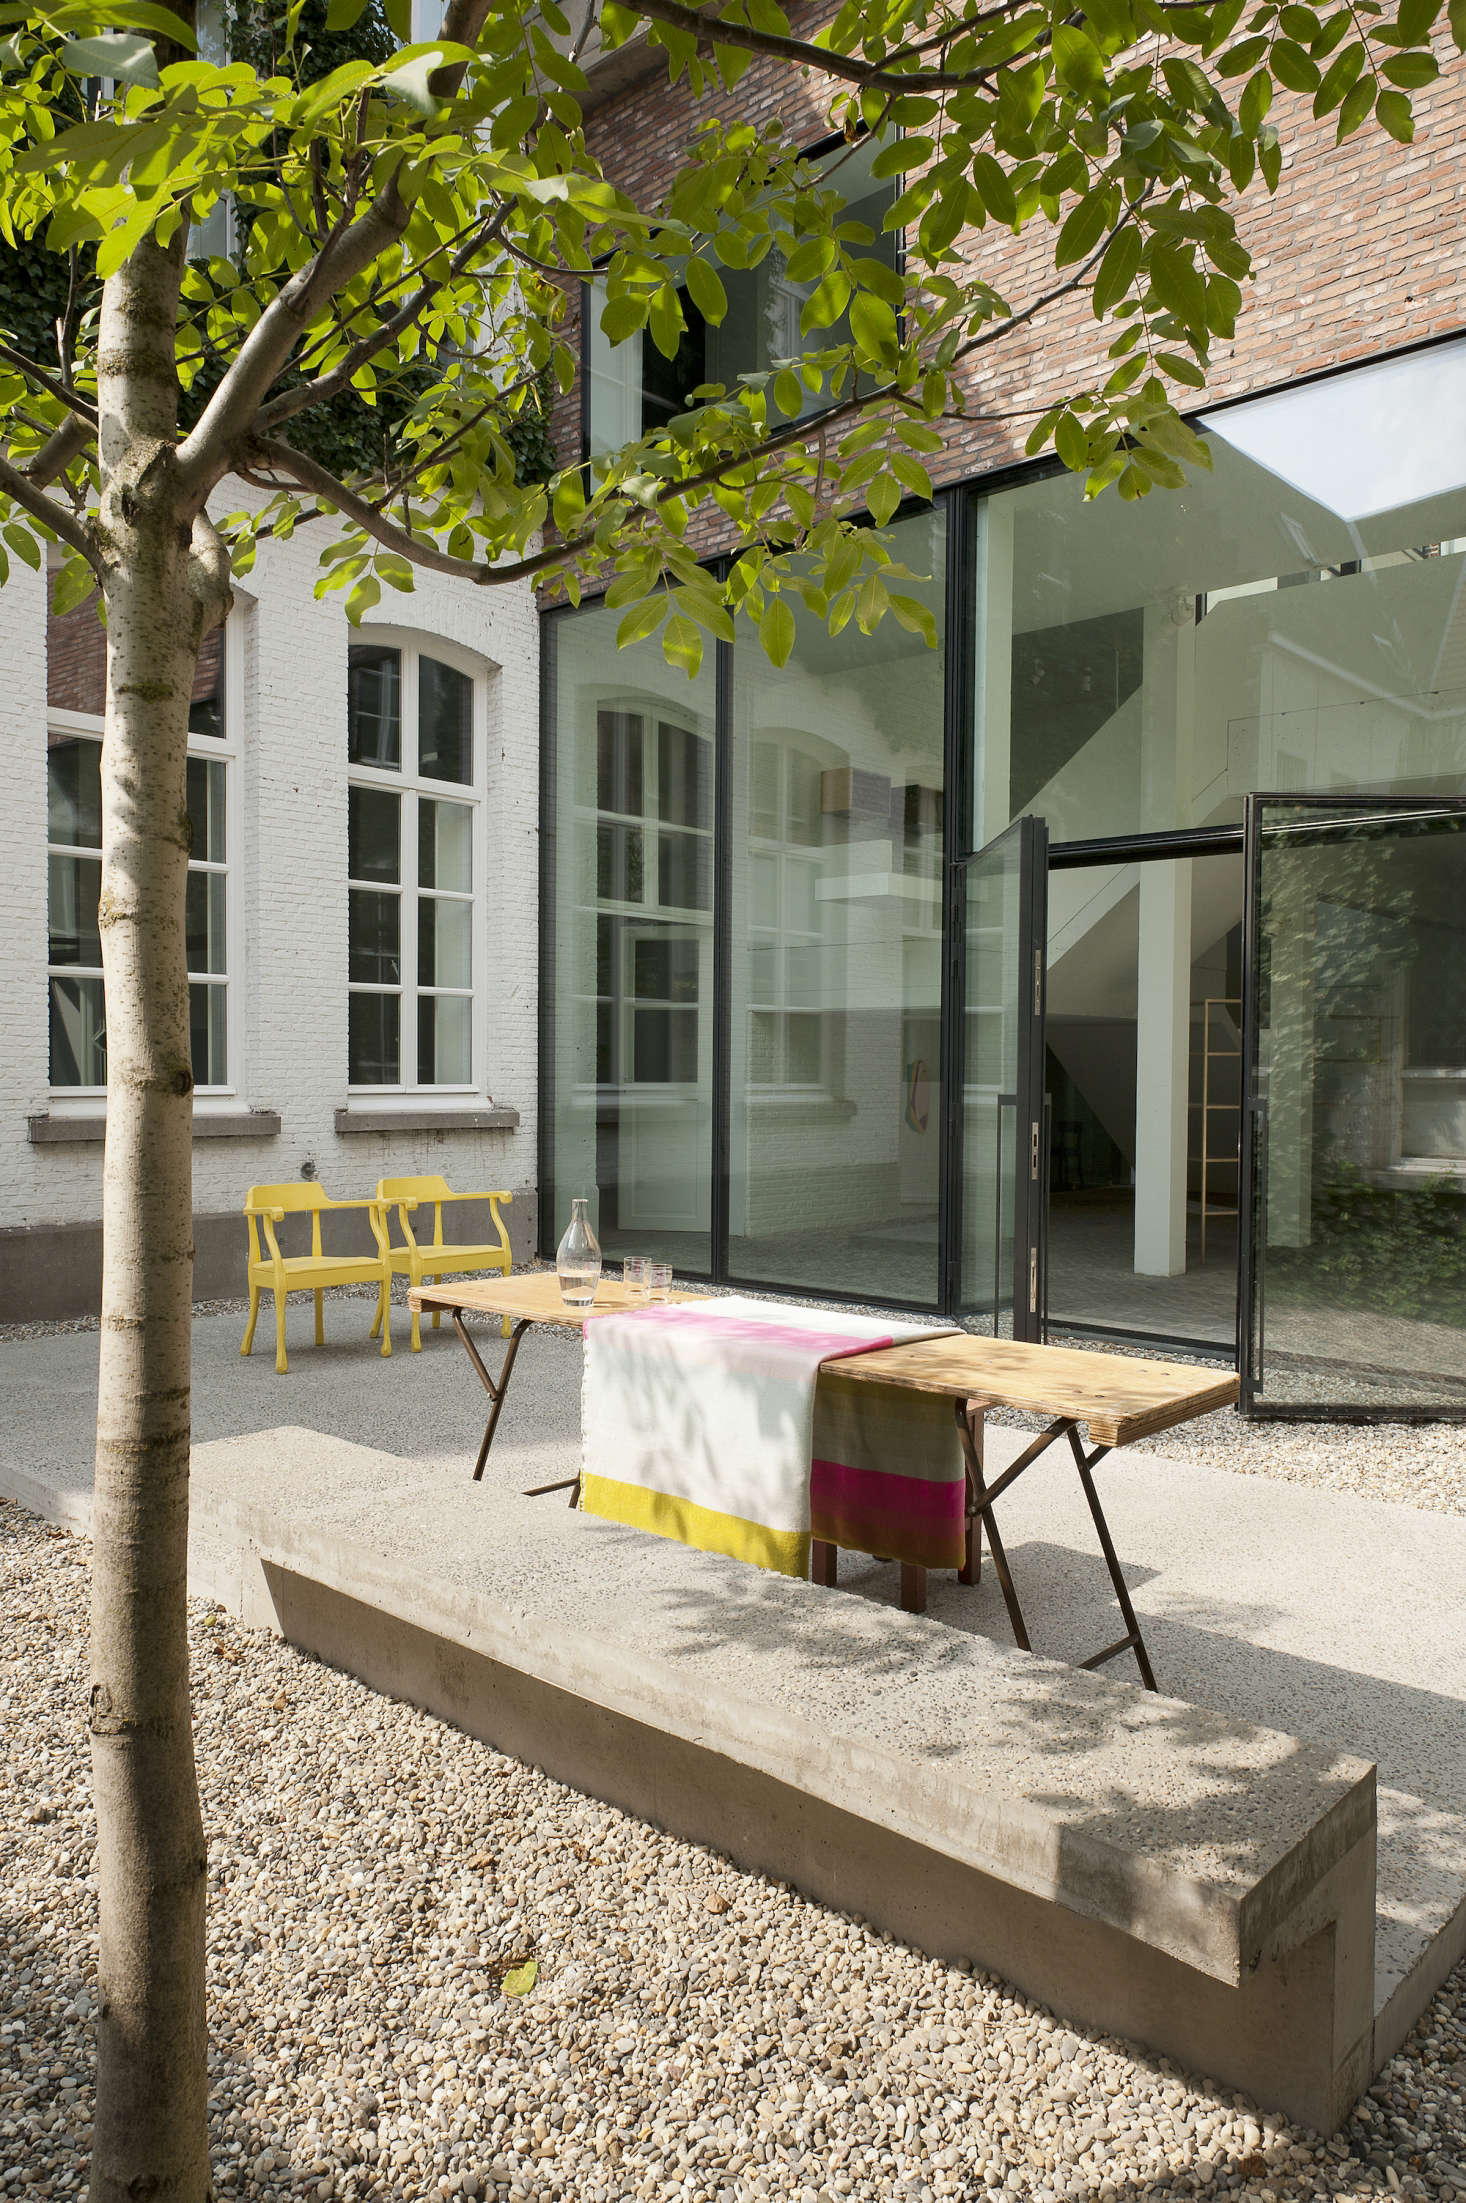 A cement bench is built into the concrete platform island in the courtyard.